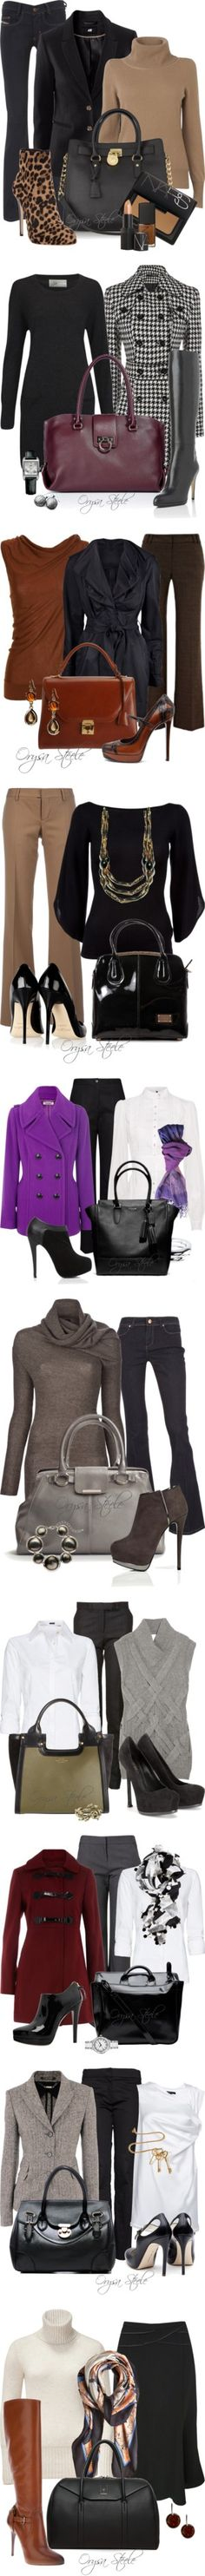 """""""Dressed Up for Fall"""" by orysa on Polyvore  If I only had some place to go to that required me getting dressed up... -M"""